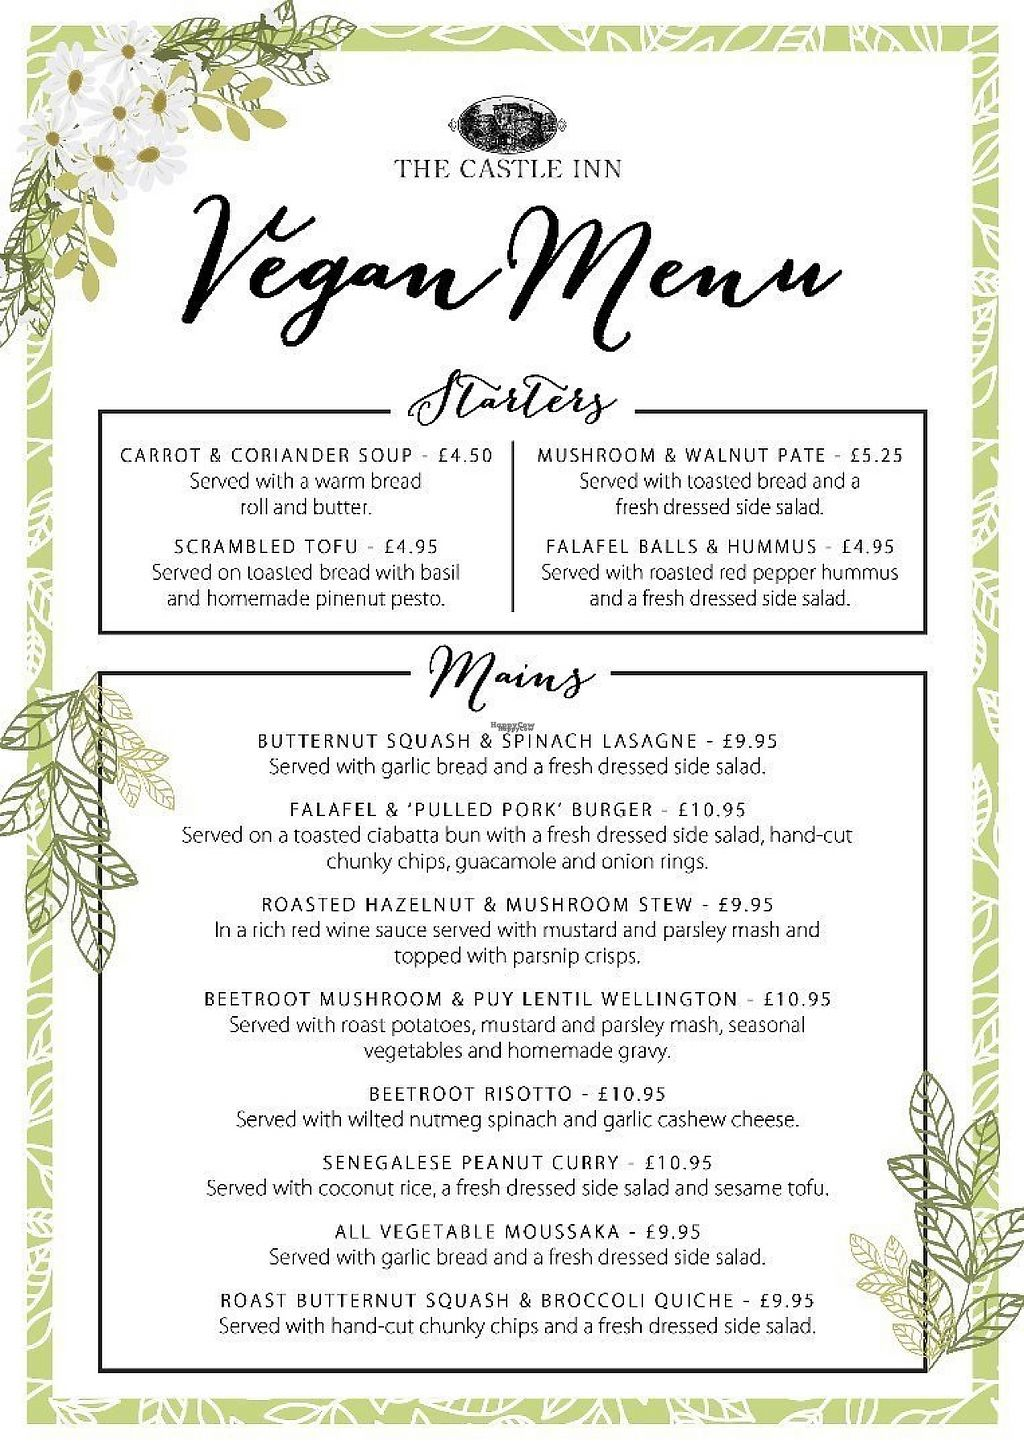 """Photo of The Castle Inn   by <a href=""""/members/profile/Veganolive1"""">Veganolive1</a> <br/>Vegan menu <br/> March 3, 2017  - <a href='/contact/abuse/image/88054/232281'>Report</a>"""